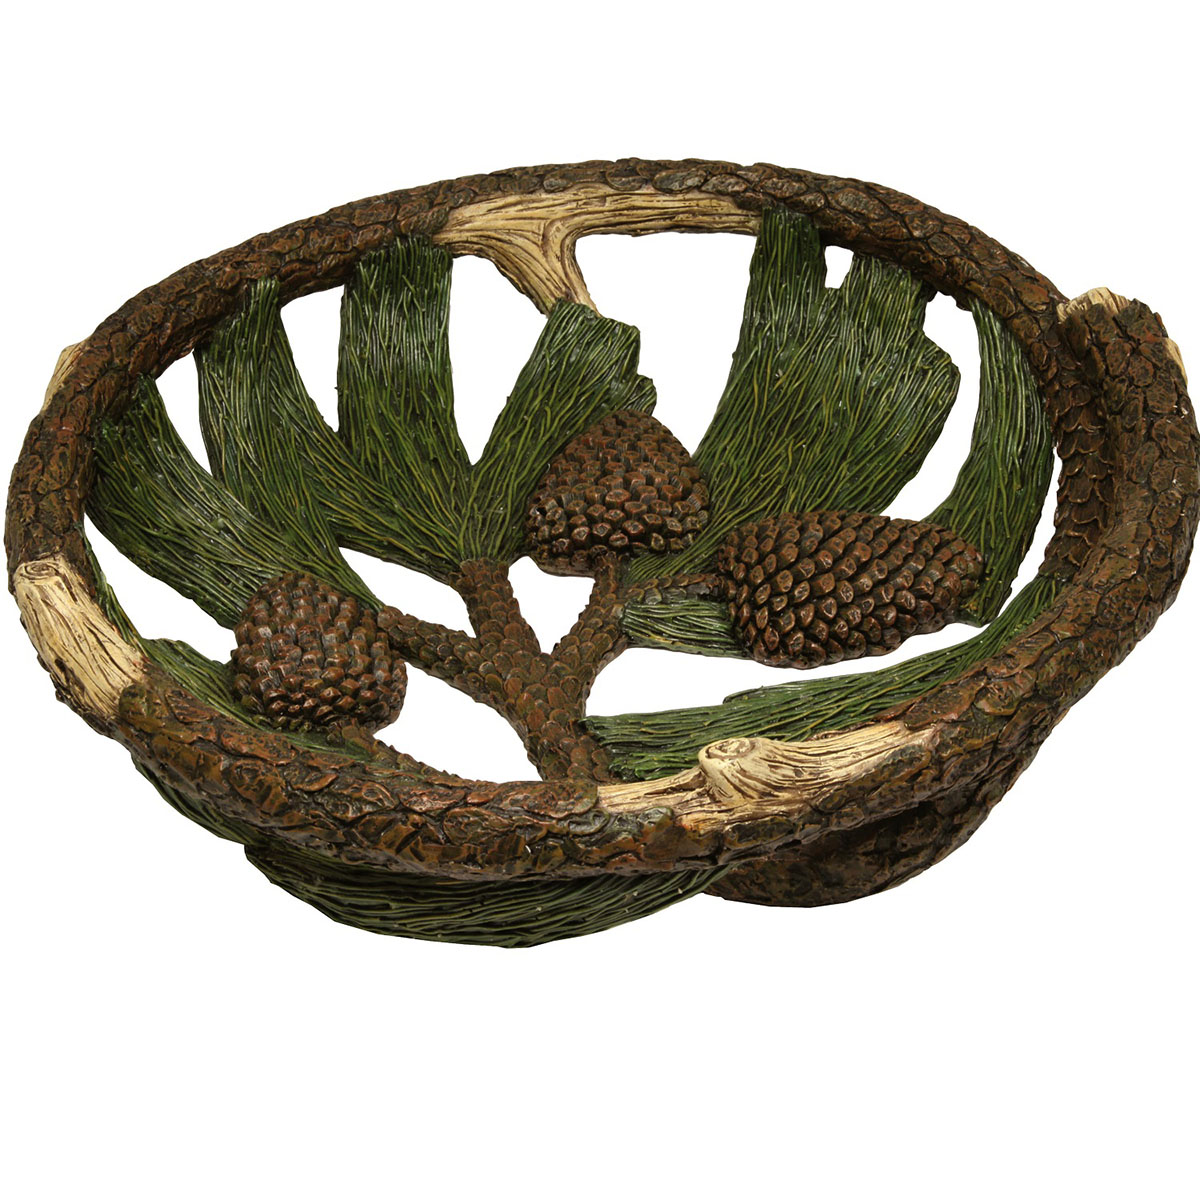 Rivers edge pine cone fruit bowl 12in diameter walmart com